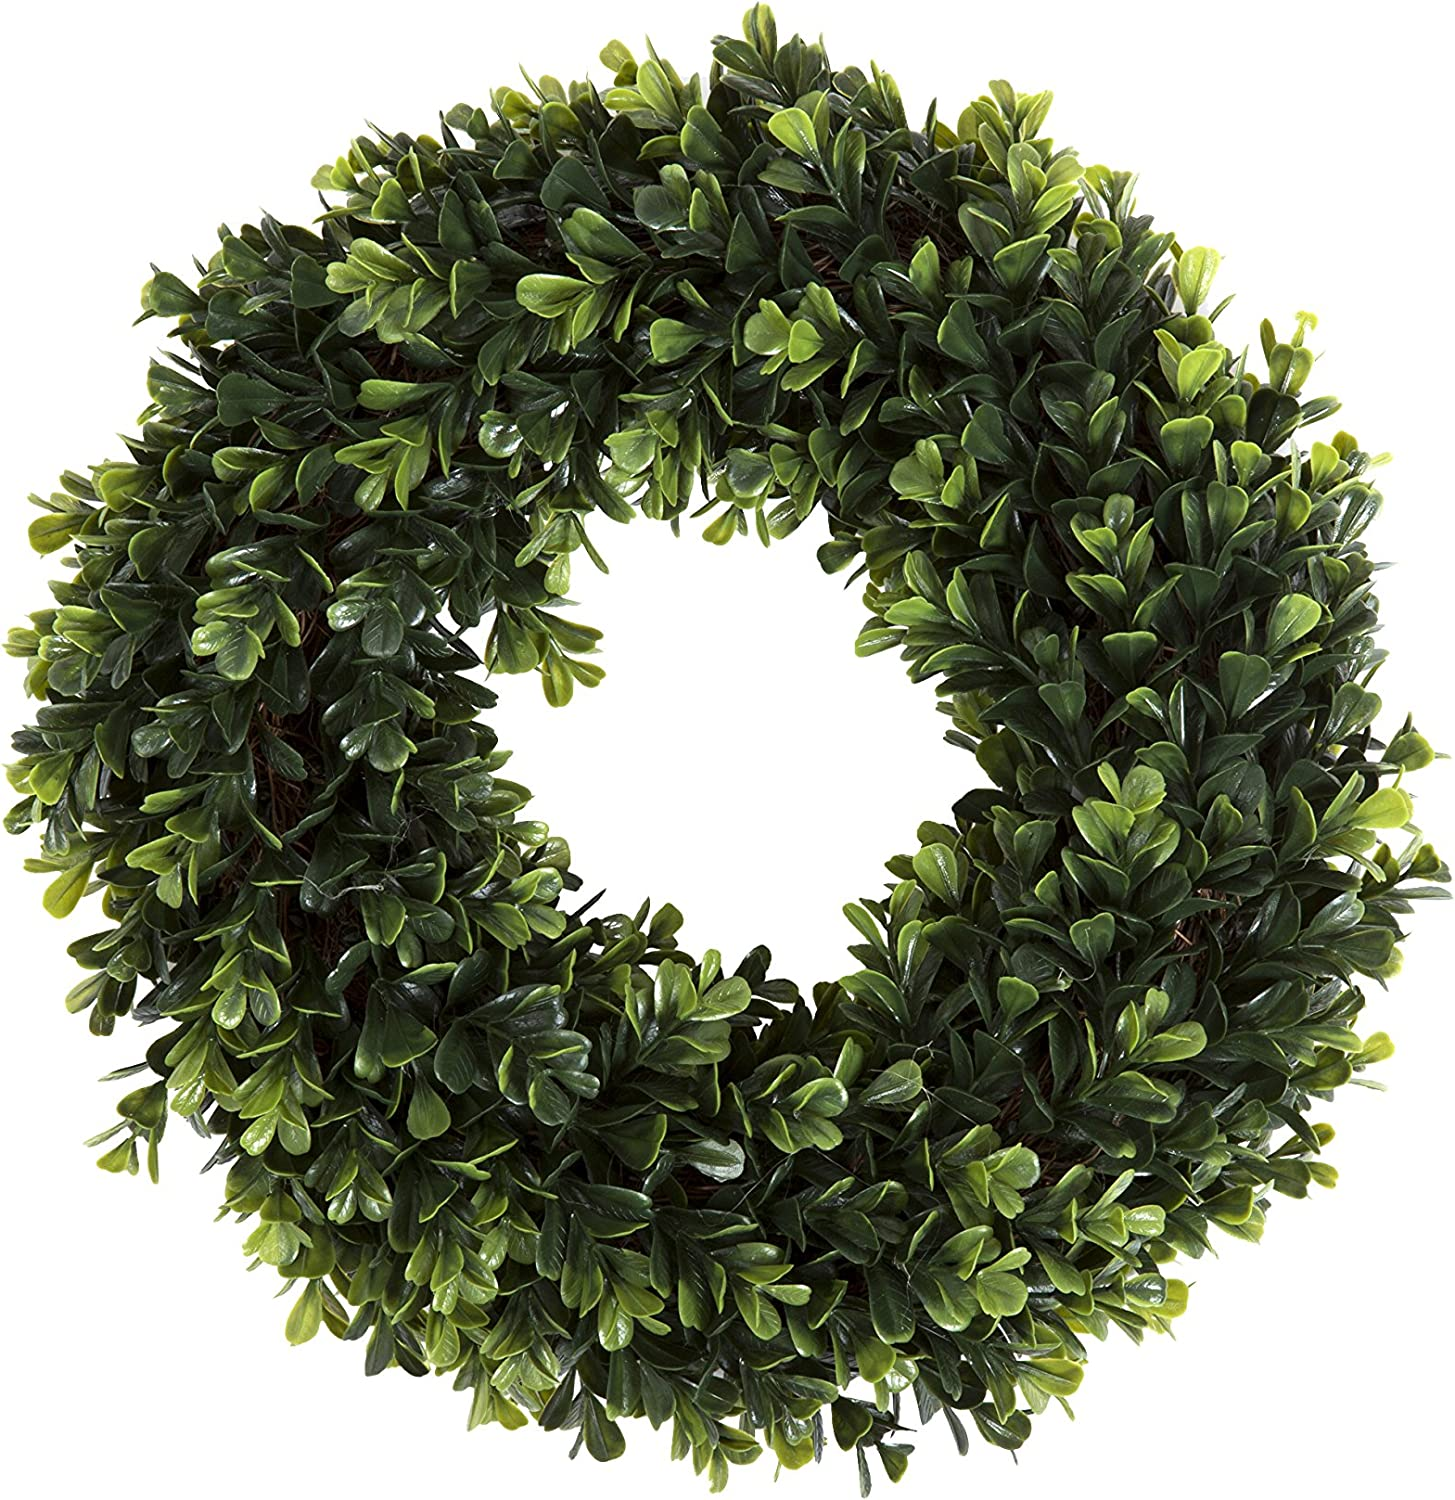 Boxwood Wreath Artificial Wreath For The Front Door By Pure Garden Home Décor Uv Resistant 12 Inches Home Kitchen